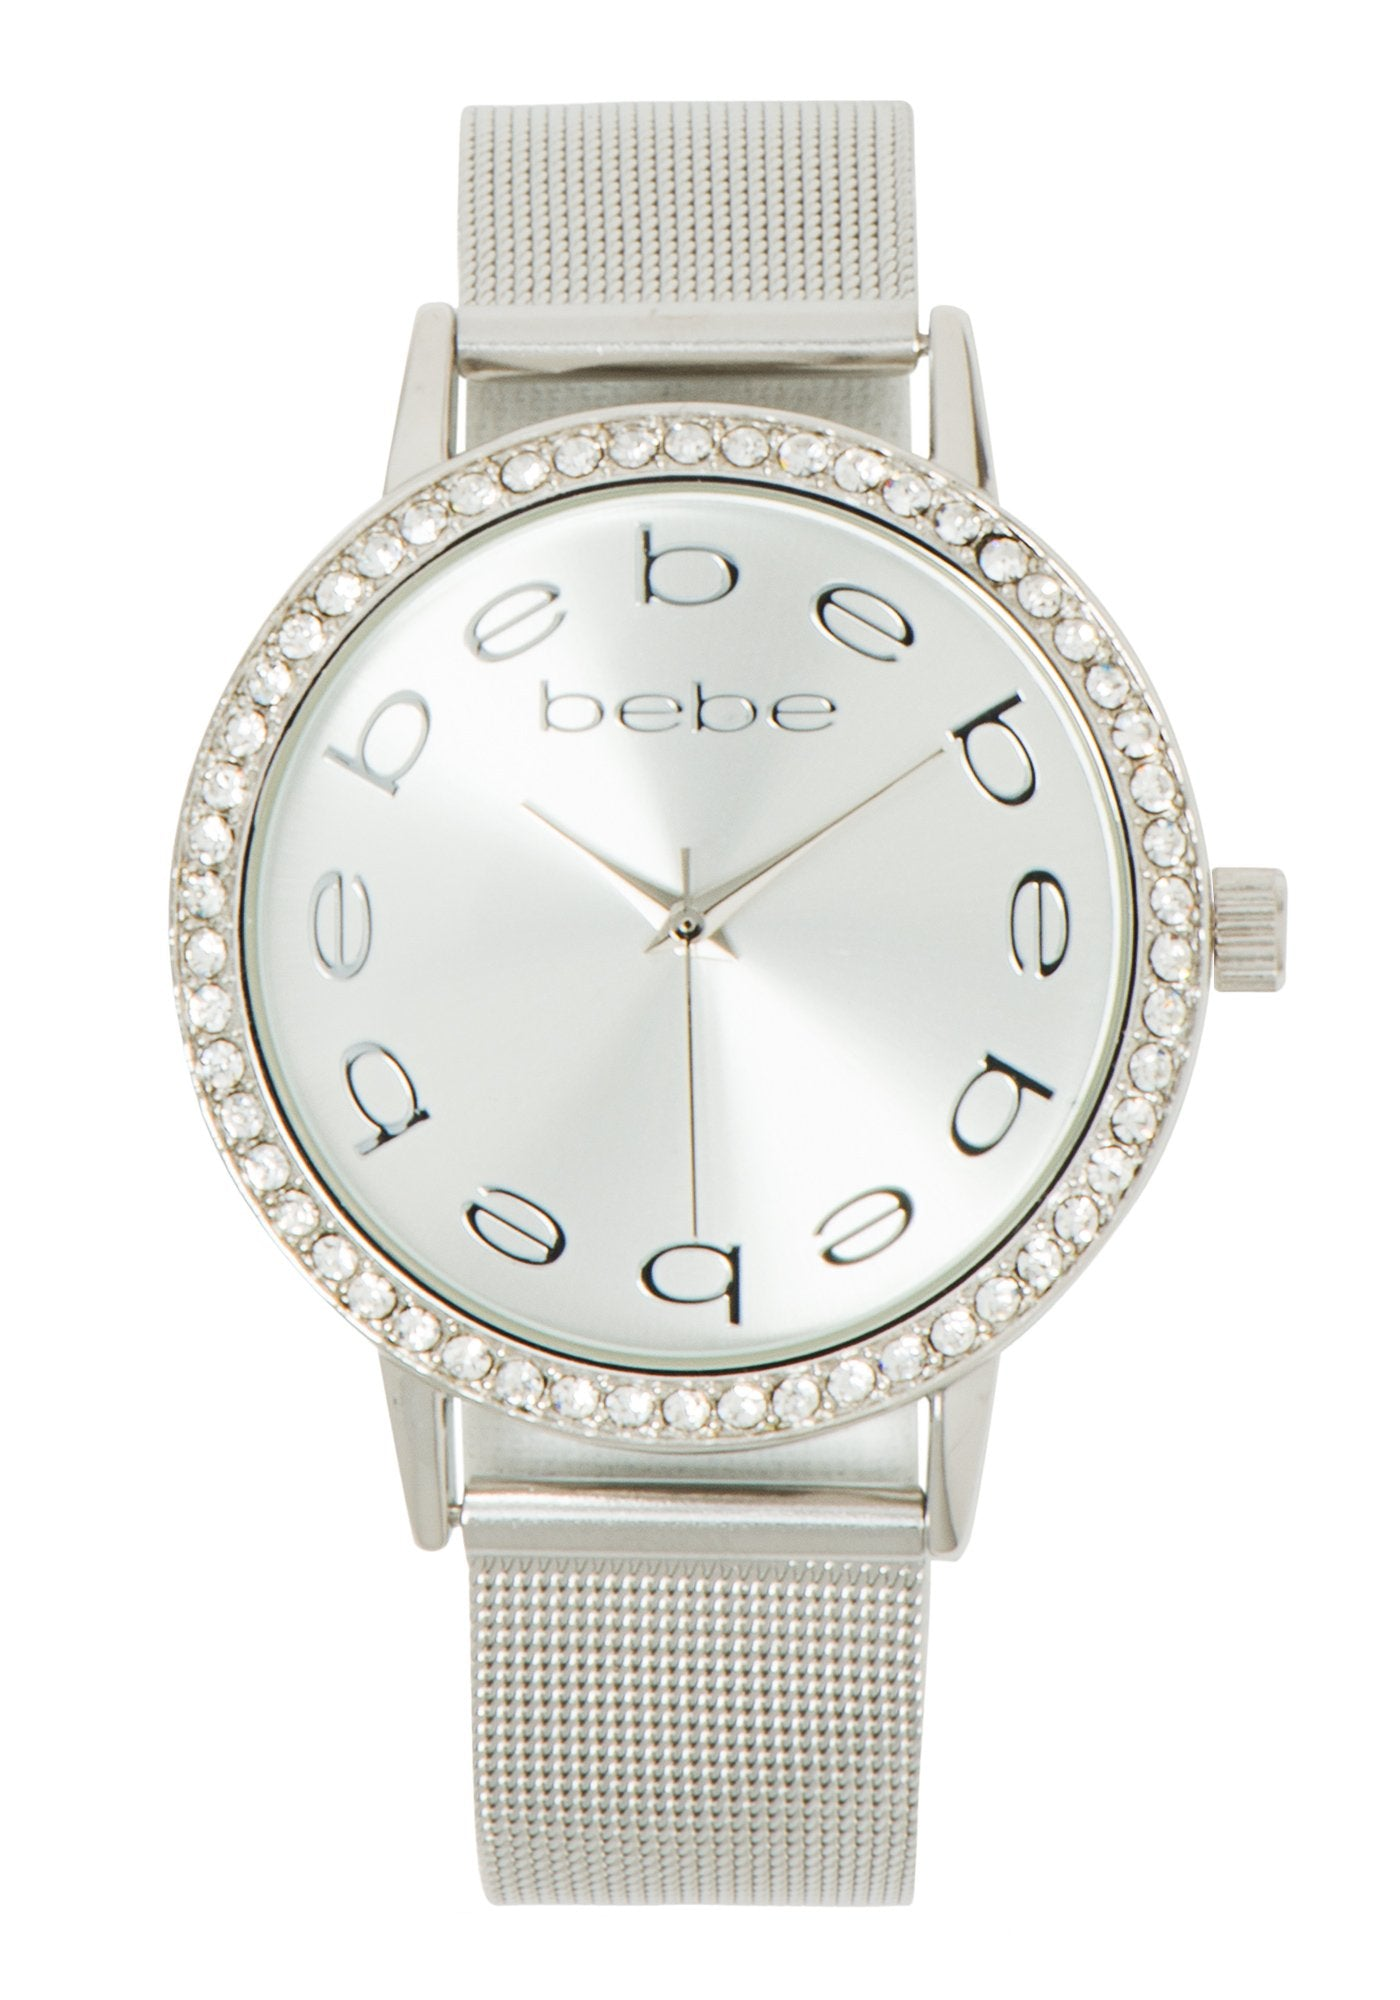 Women's Mesh Bracelet Bebe Watch in SILVER